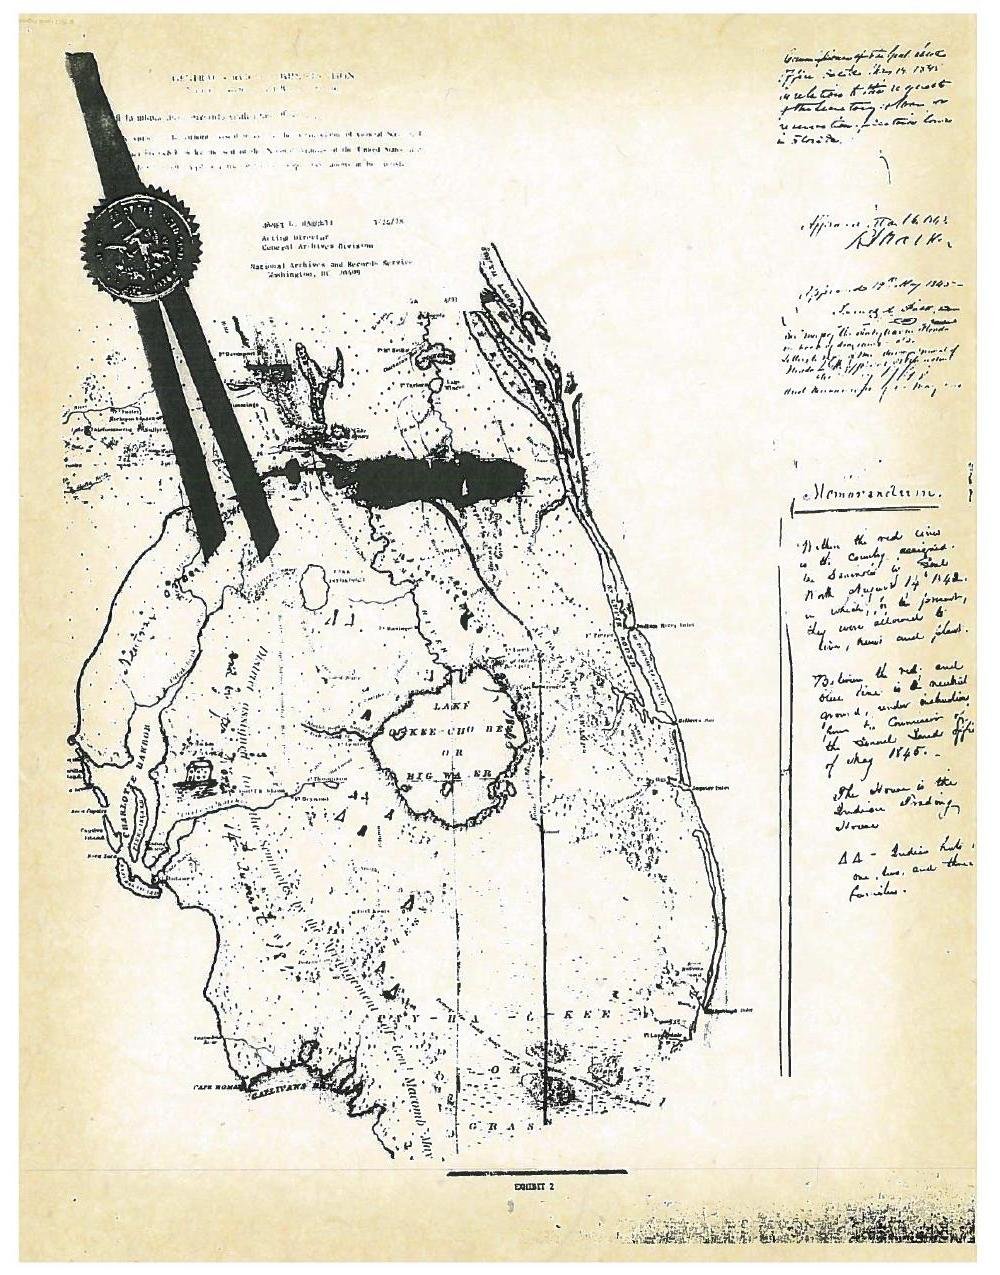 1000x1275 1845 original land map, in Council of the Original Miccosukee Simanolee Nation, by John S. Quarterman, for SpectraBusters.org, 21 November 2013